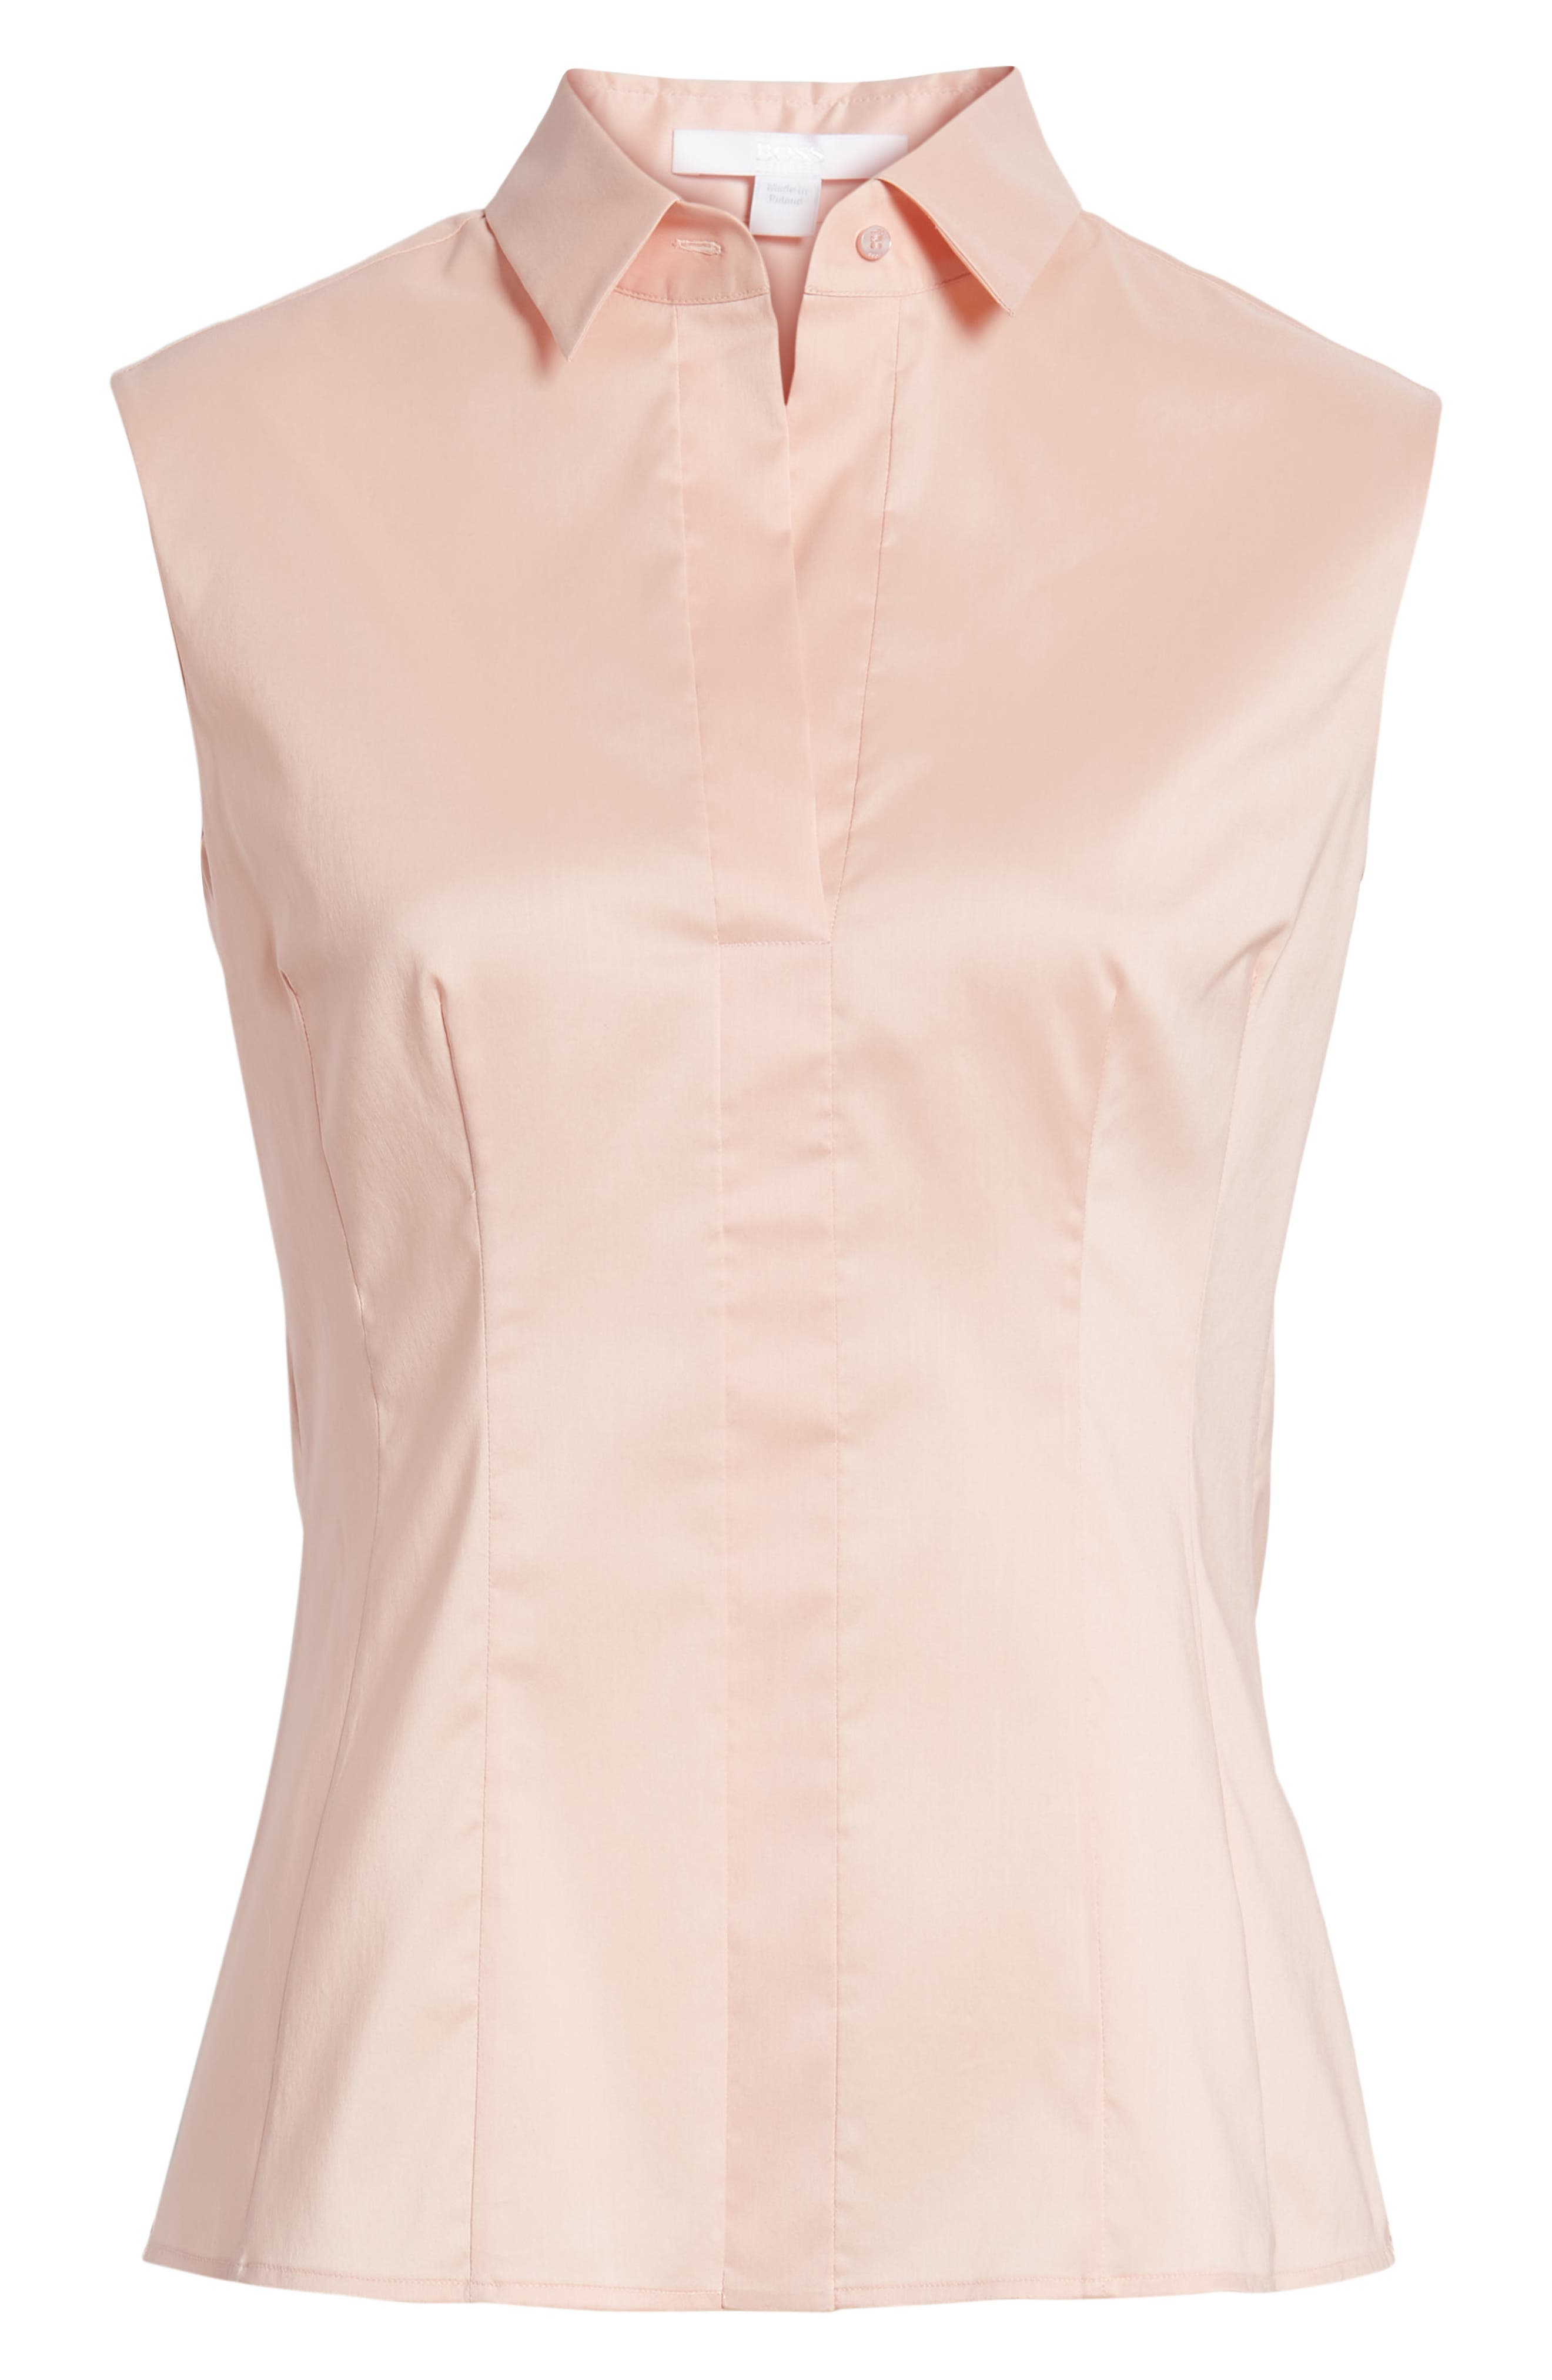 Bashiva Stretch Poplin Blouse,                             Alternate thumbnail 6, color,                             Blush